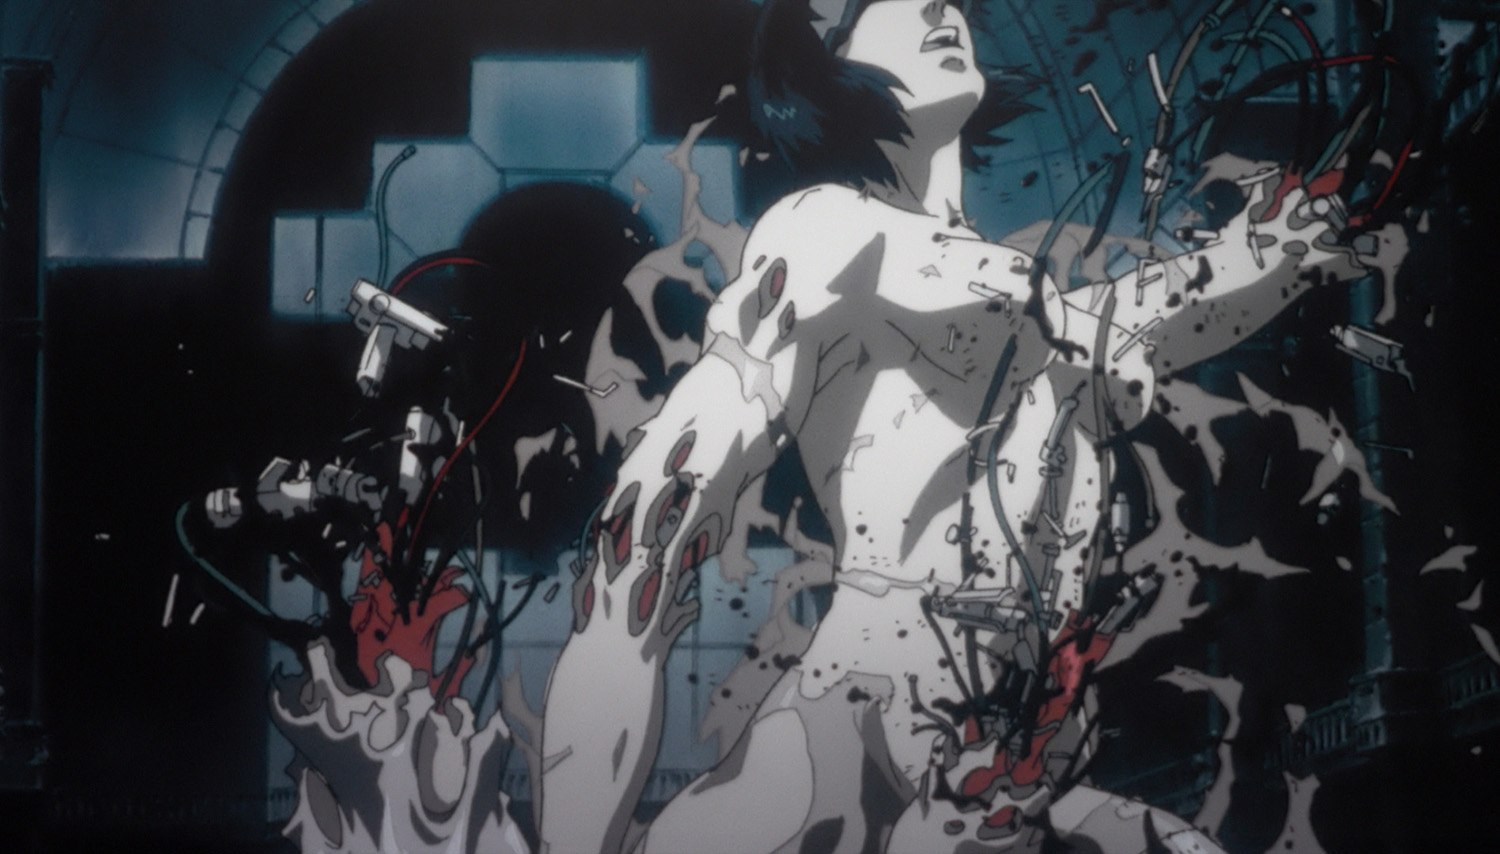 animated scene from Ghost in the Shell